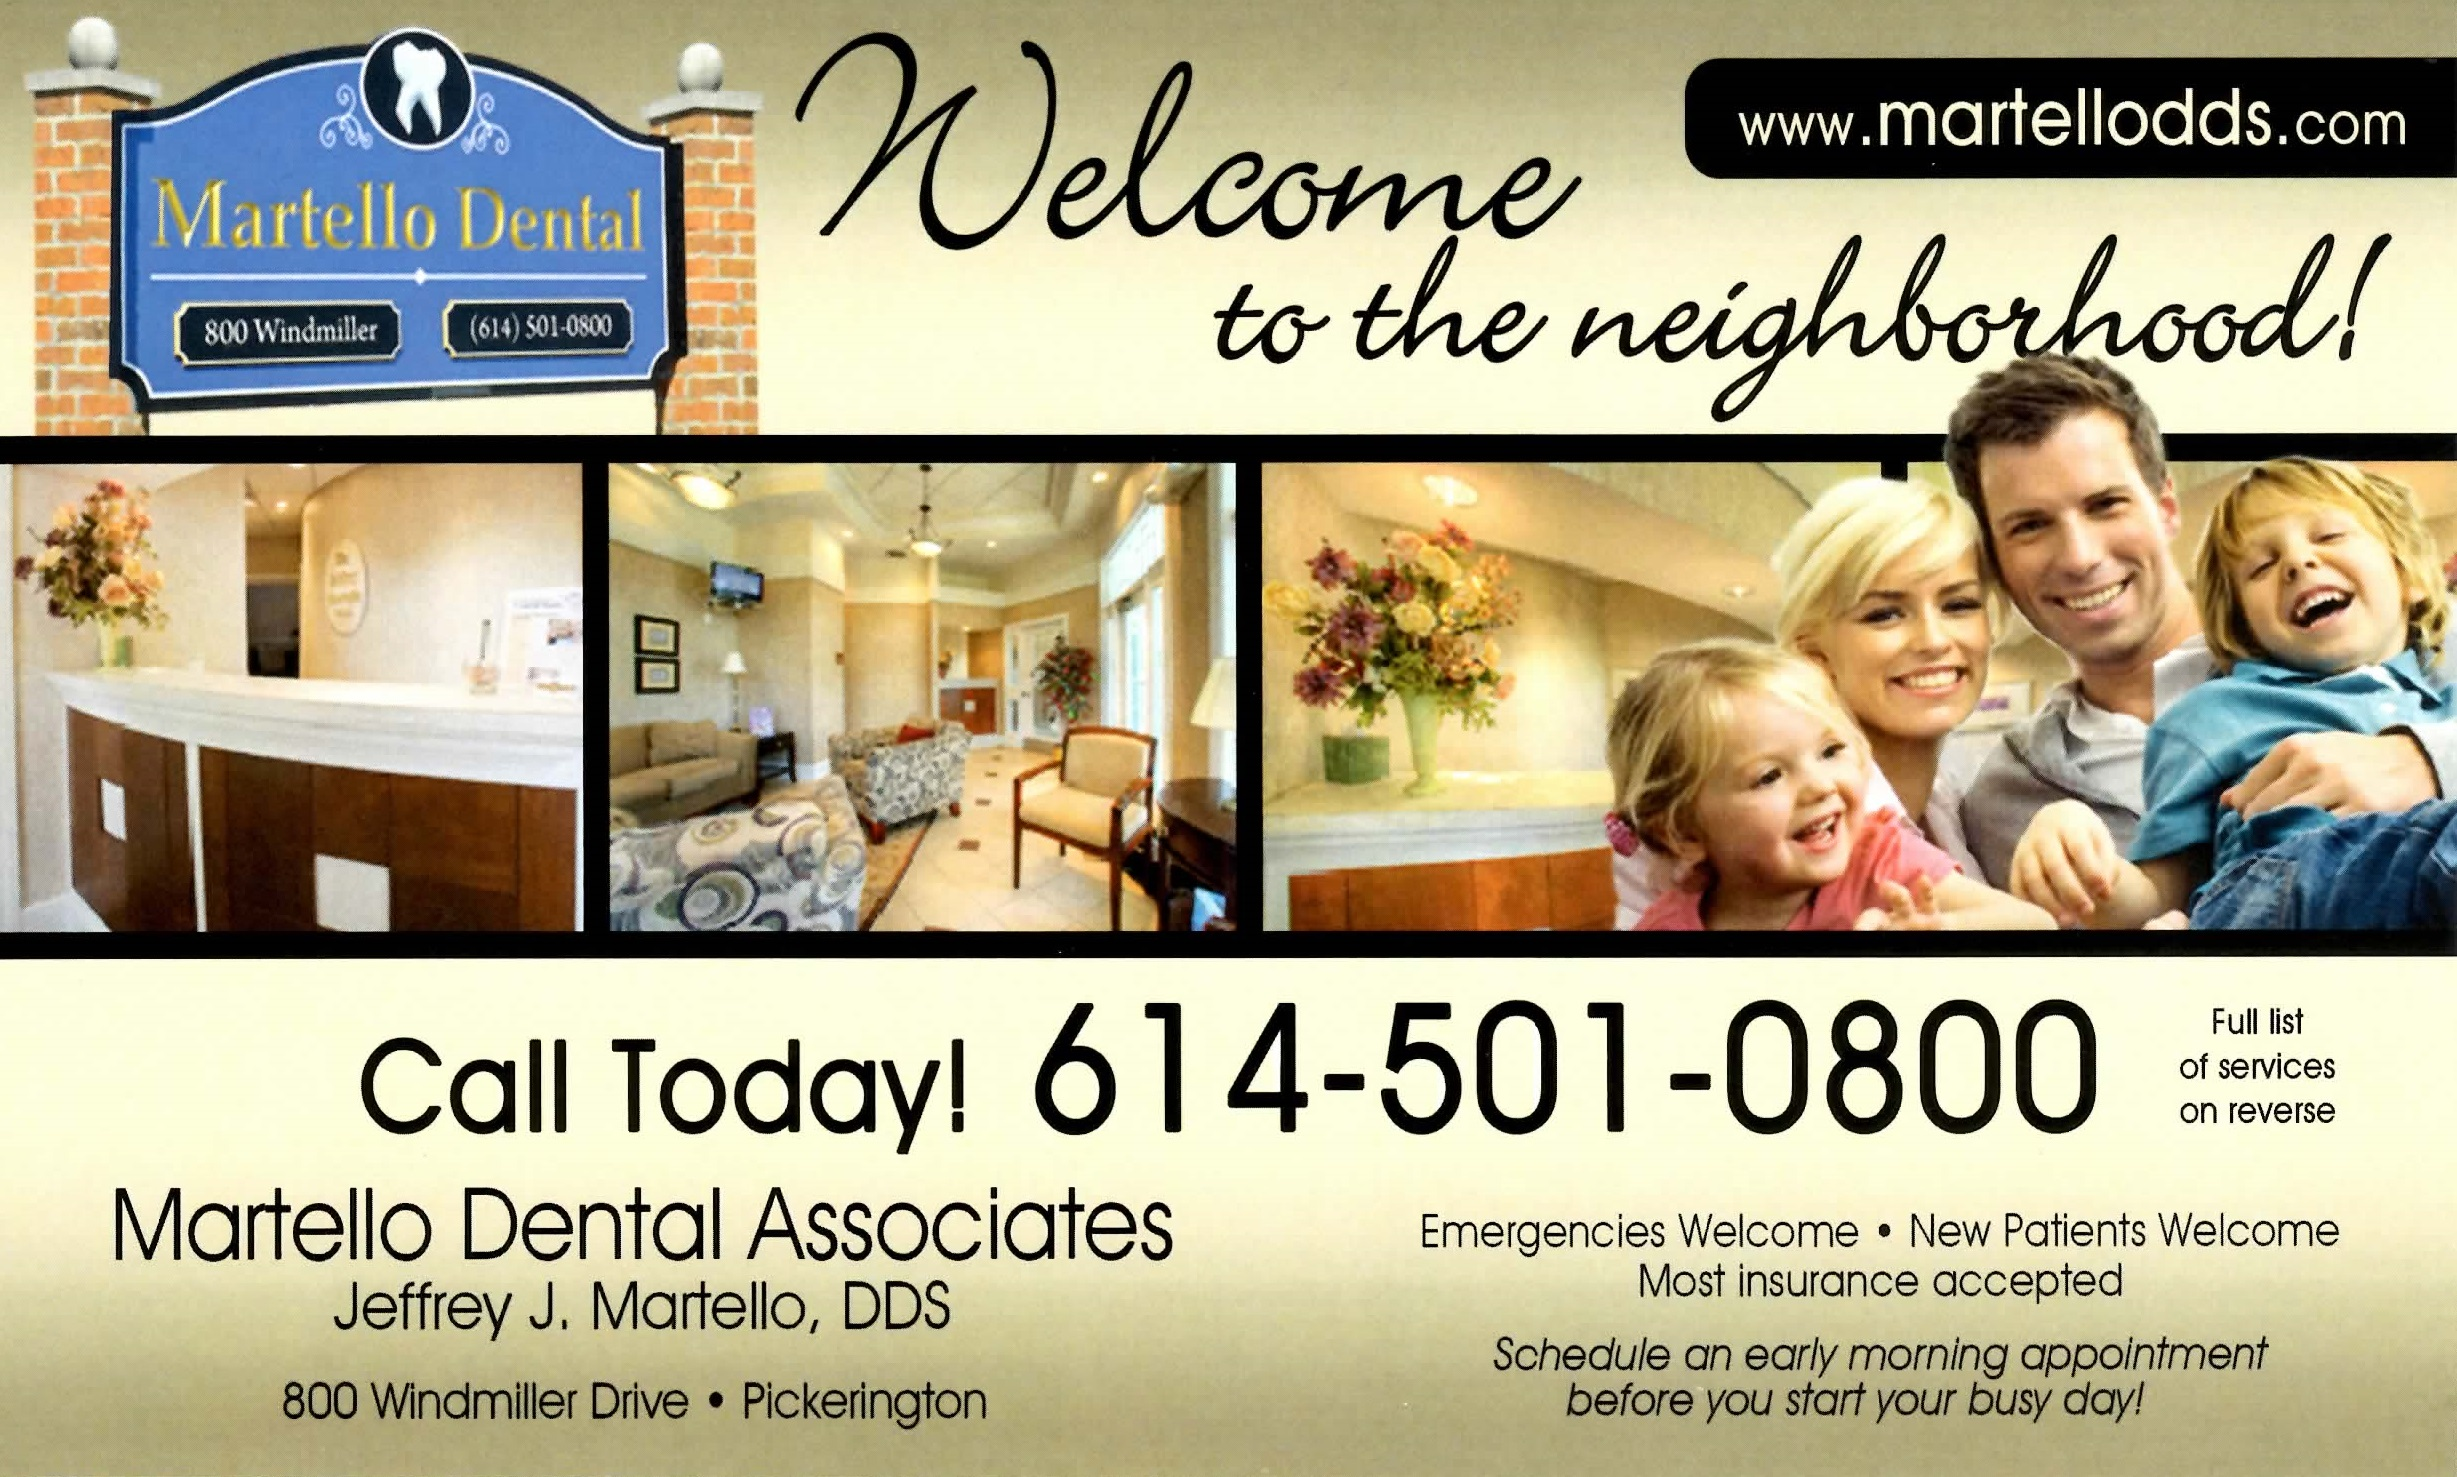 Dr. Martello's New Homeowner Post Card